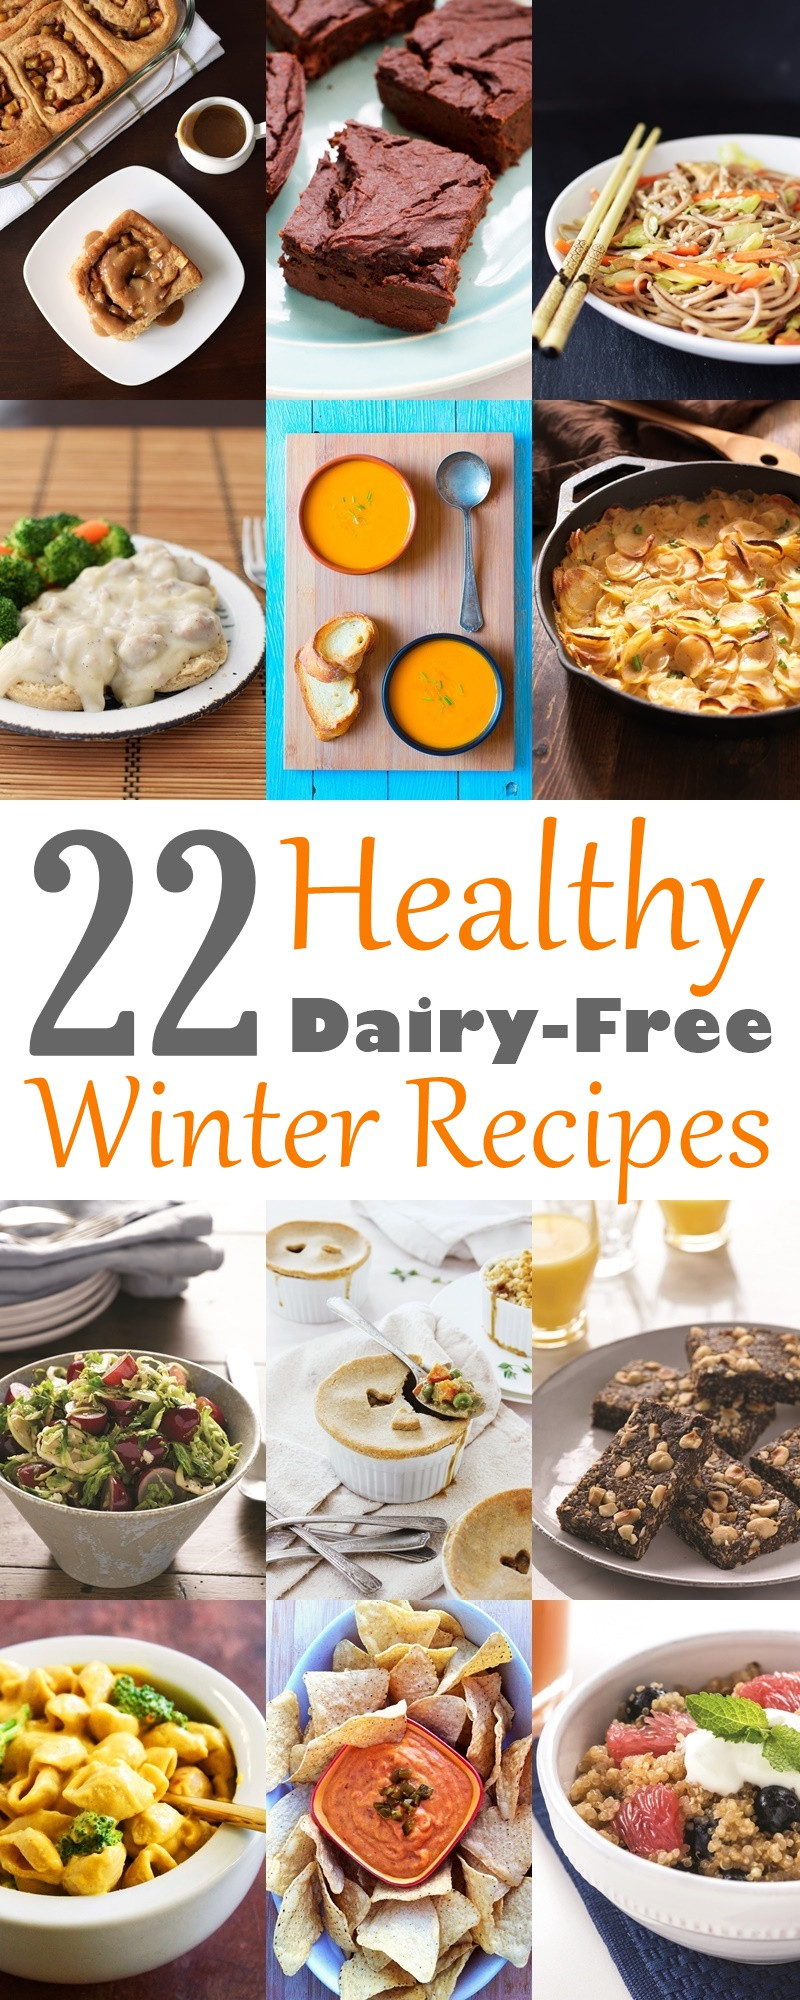 Healthy Dairy Free Recipes  22 Healthy Winter Recipes to Ring in the New Year All